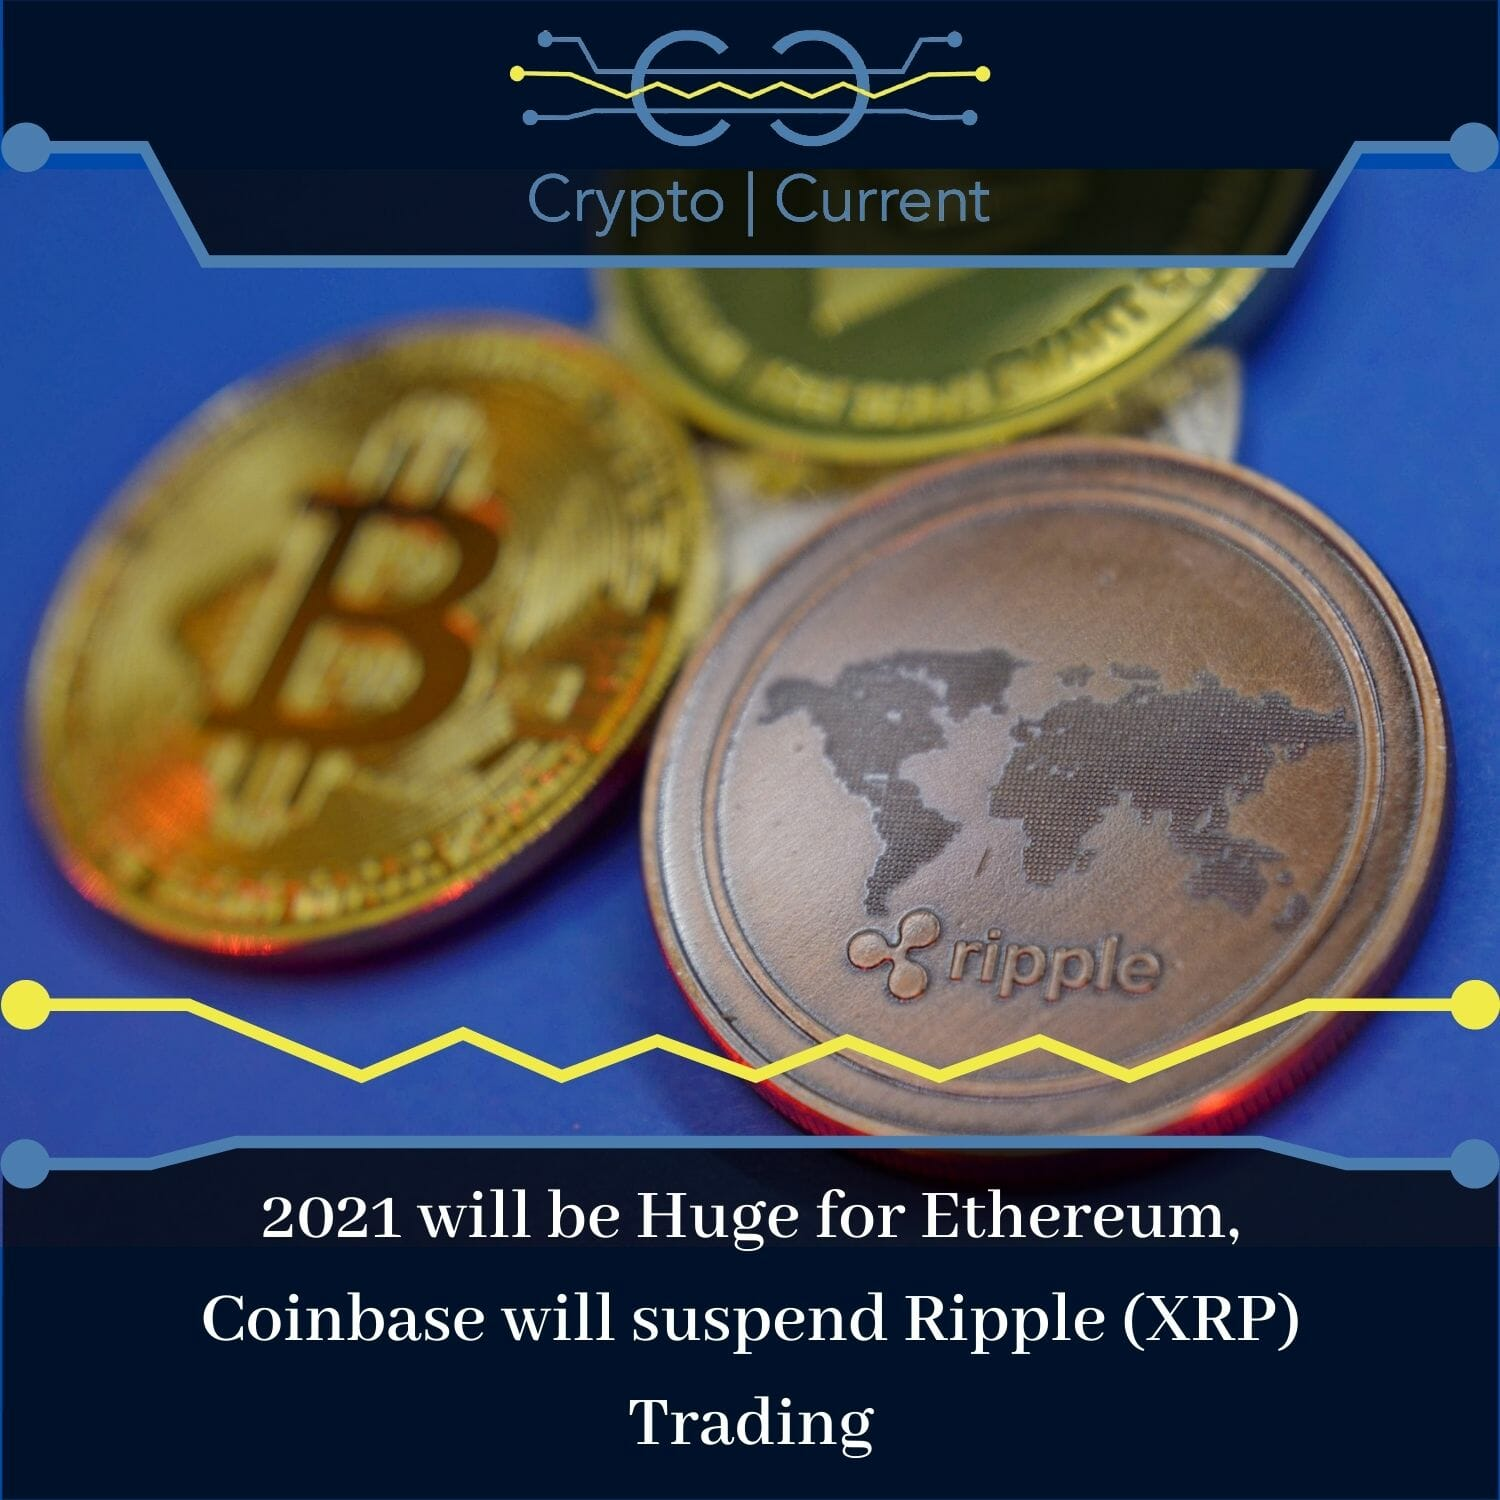 2021 will be Huge for Ethereum, Coinbase will suspend Ripple (XRP) Trading